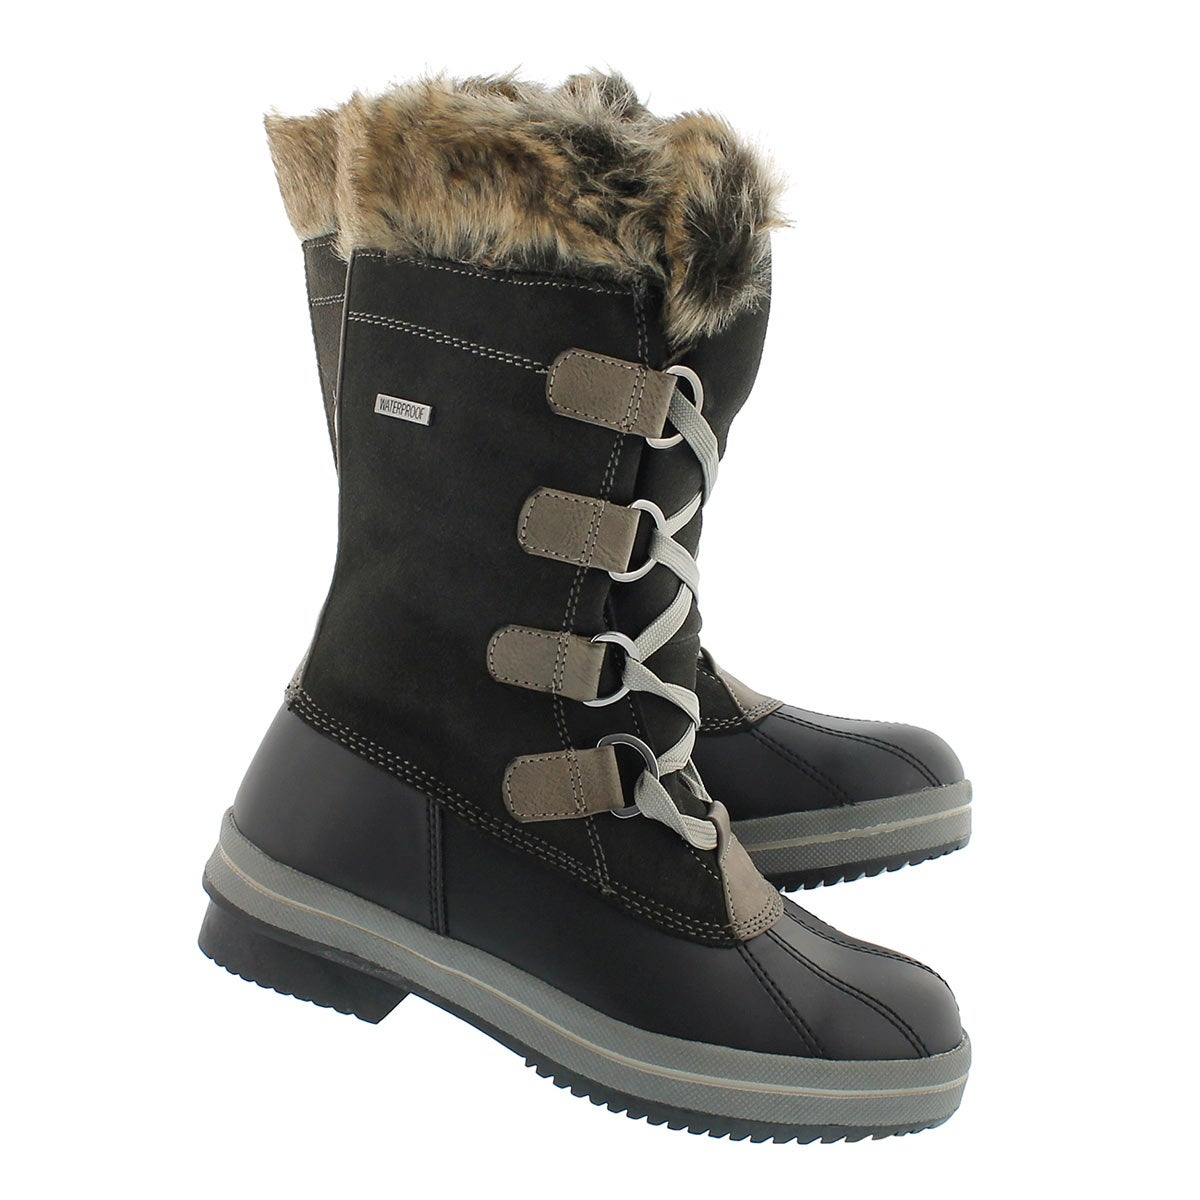 Lds Thunder Bay char wtpf winter boot